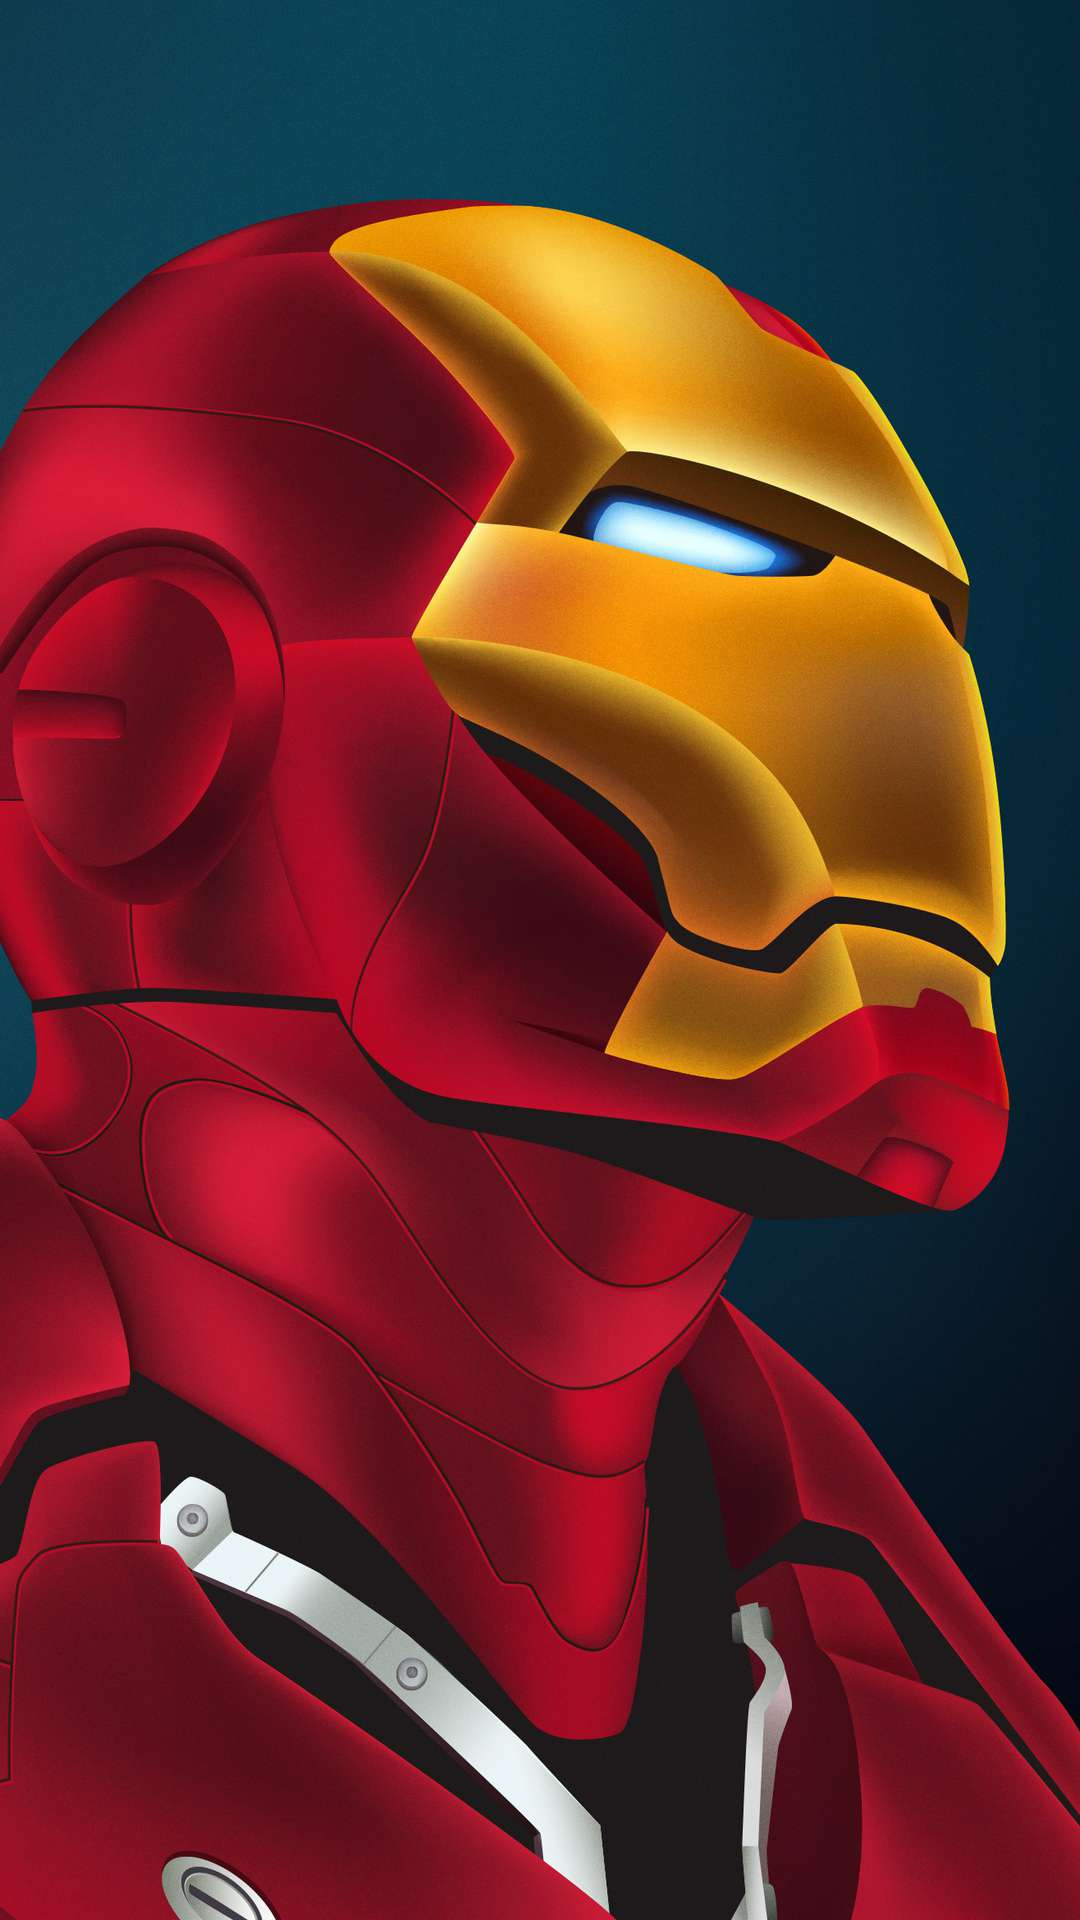 Iron Man Closeup iPhone Wallpaper